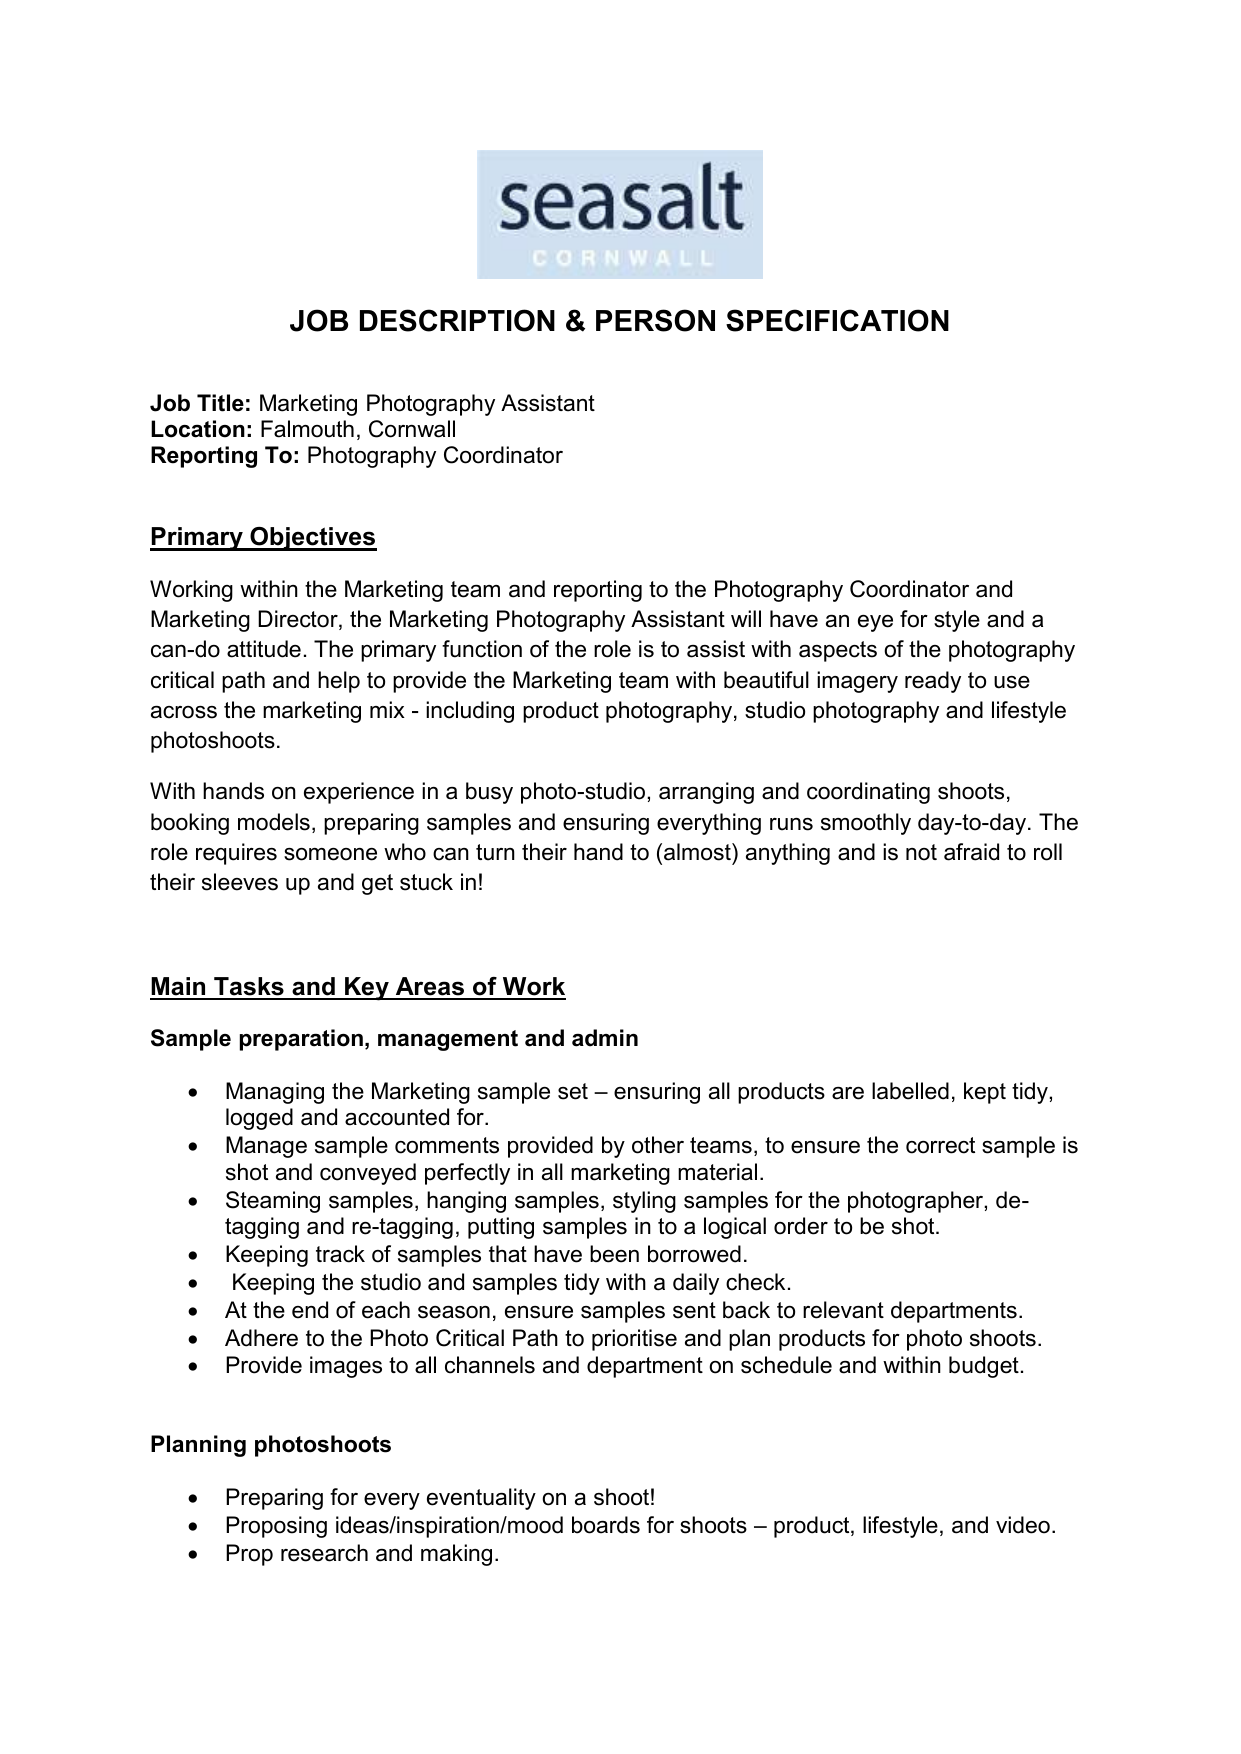 Marketing Photography Assistant Job Description